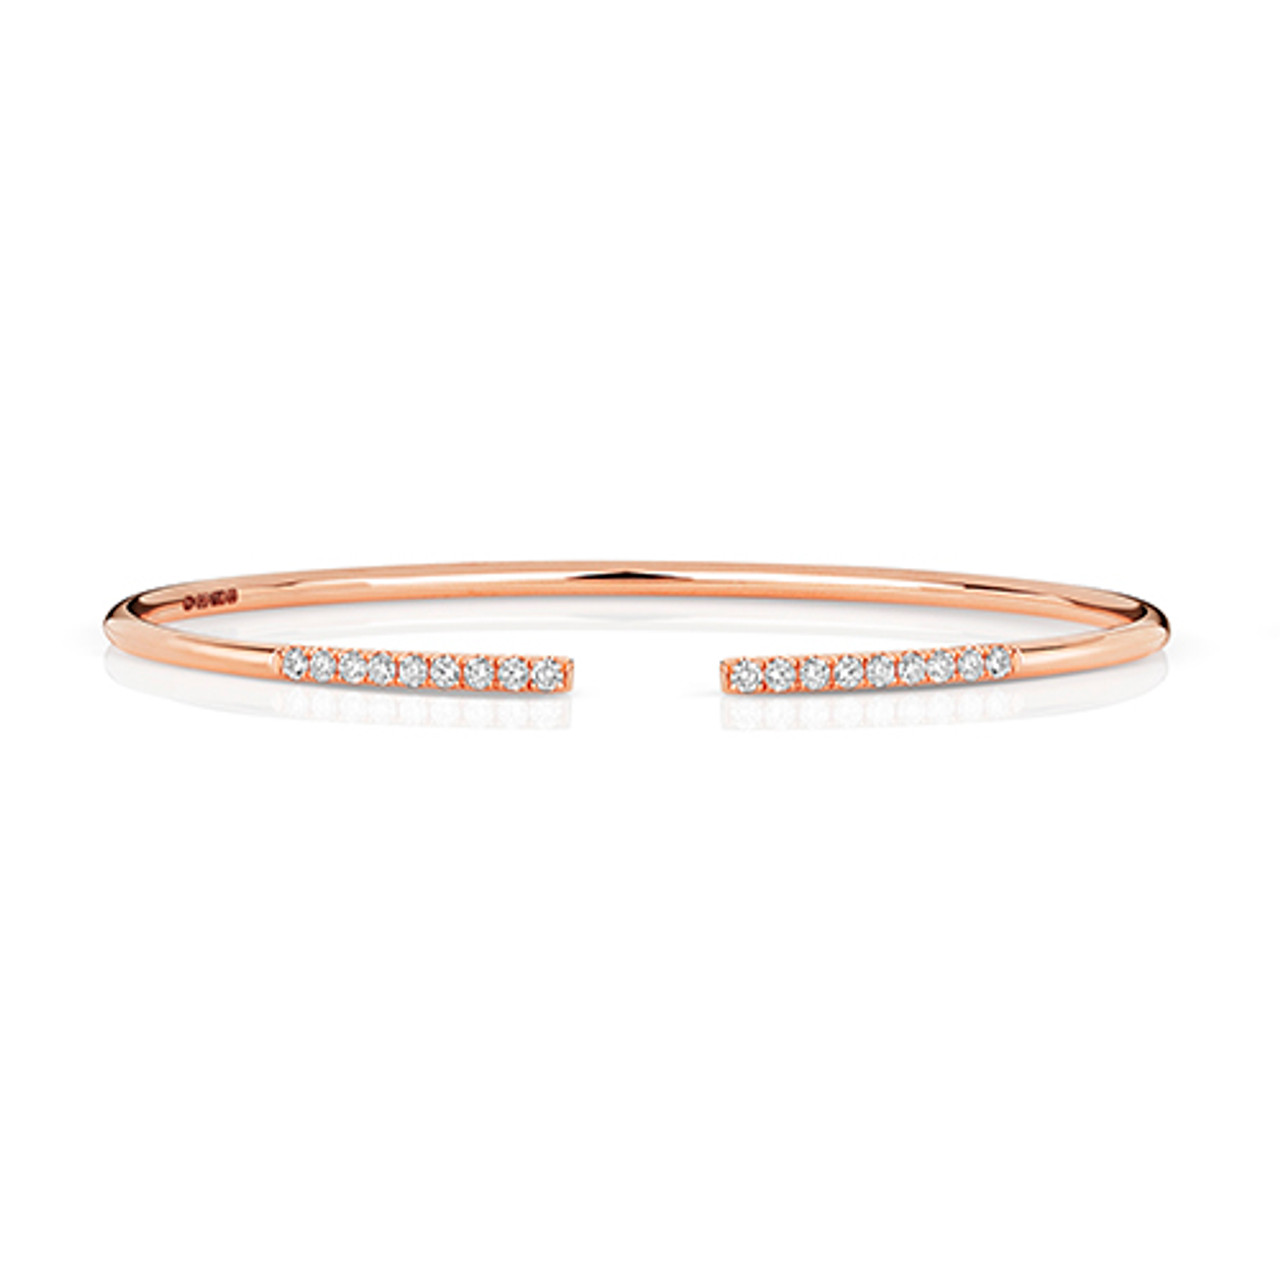 18ct Rose Gold & Diamond Bangle